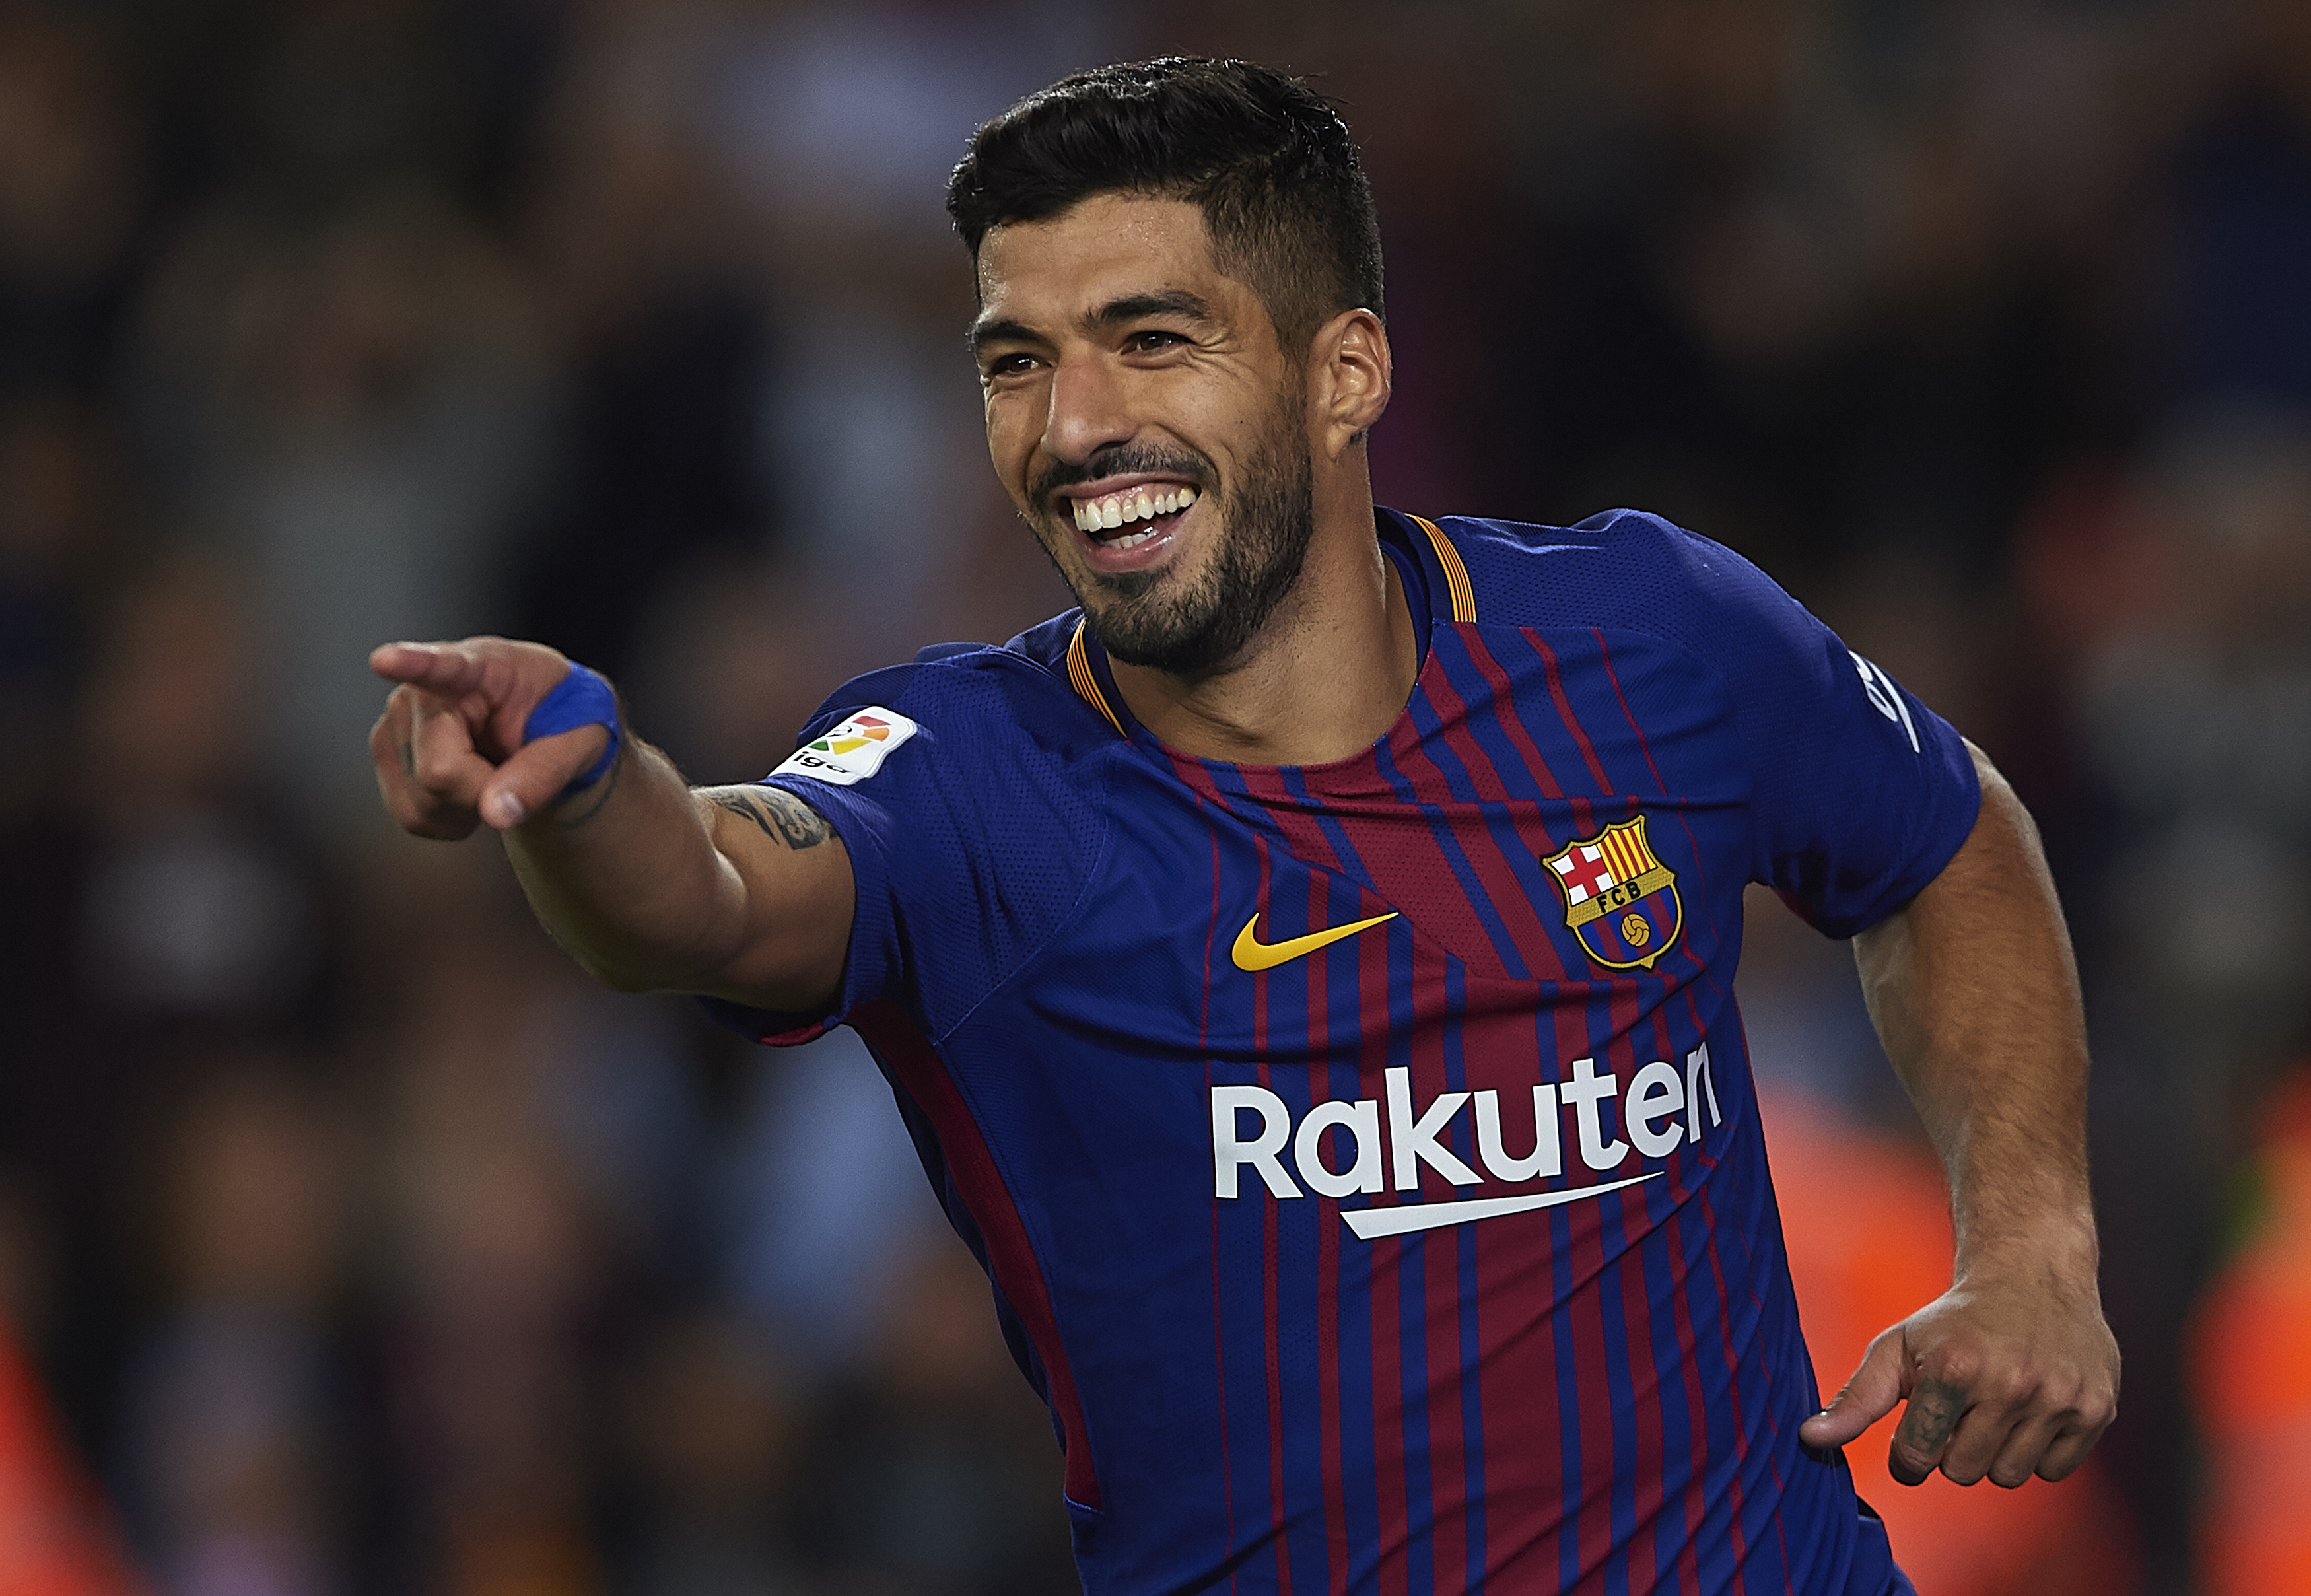 A Fan s Perspective Is it time for Barcelona to drop Luis Suarez